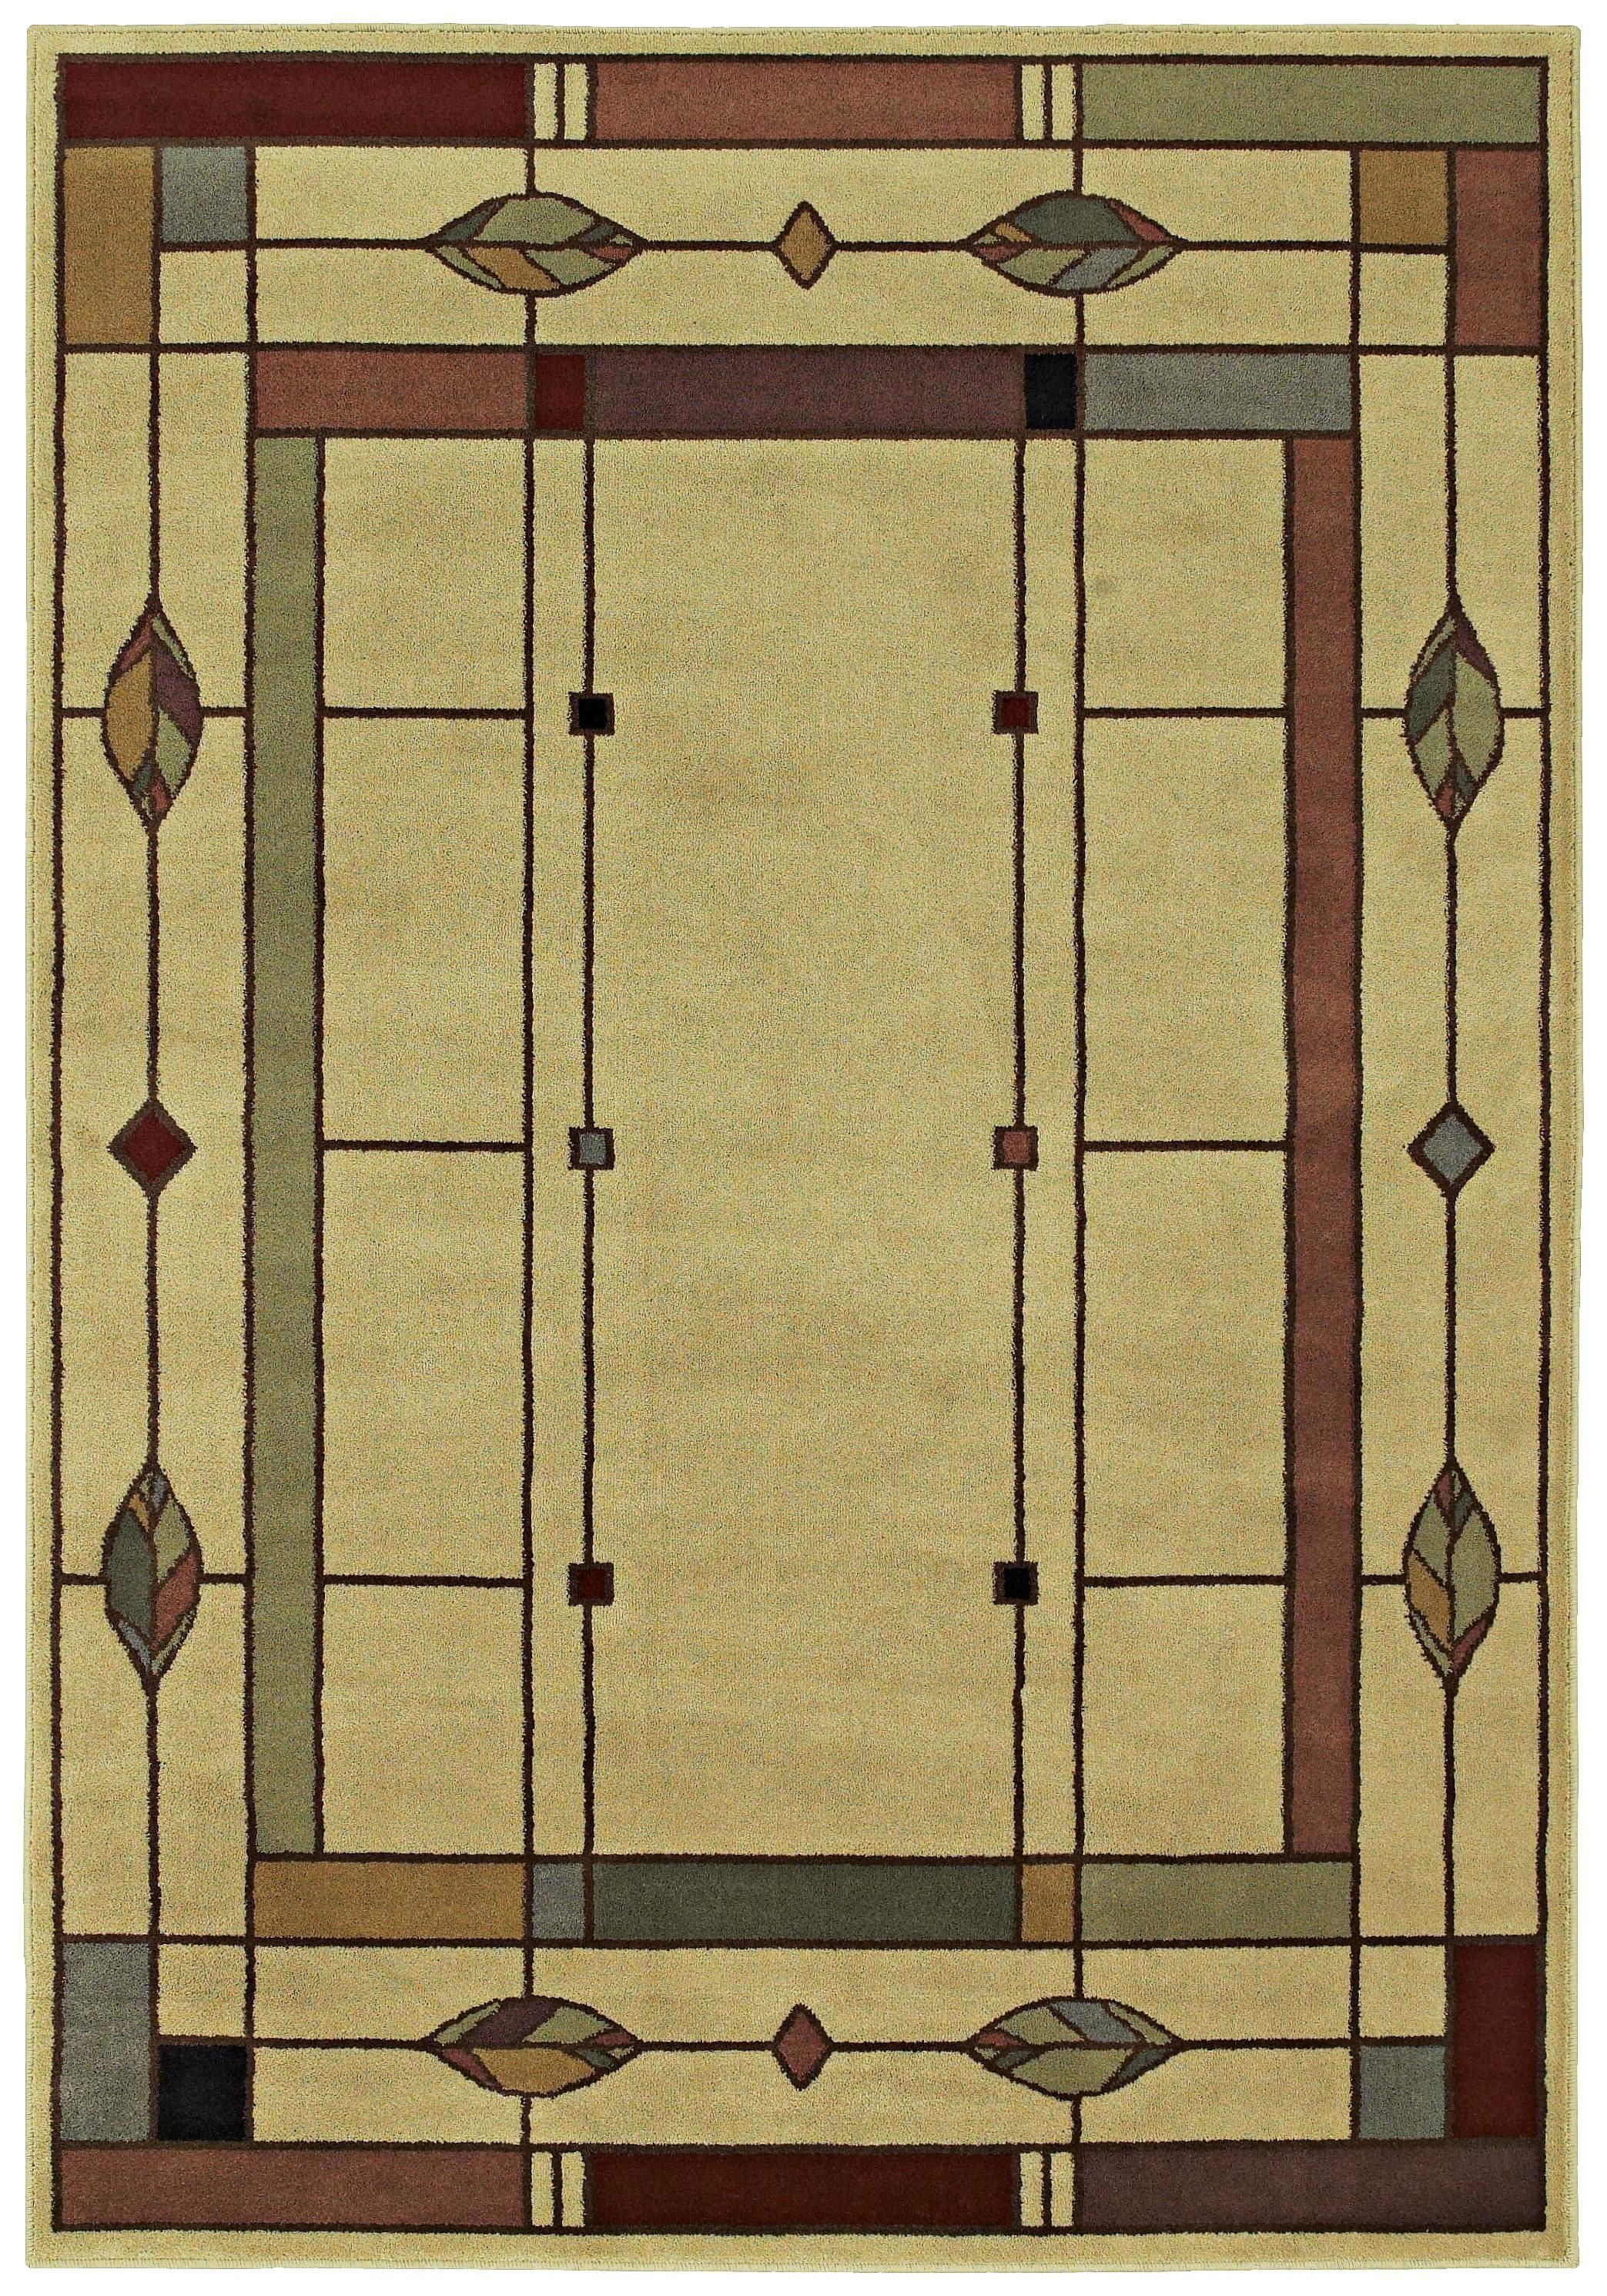 Timber Lake Mission Area Rug 96606 Lamps Plus Mission Style Decorating Craftsman Rugs Mission Style